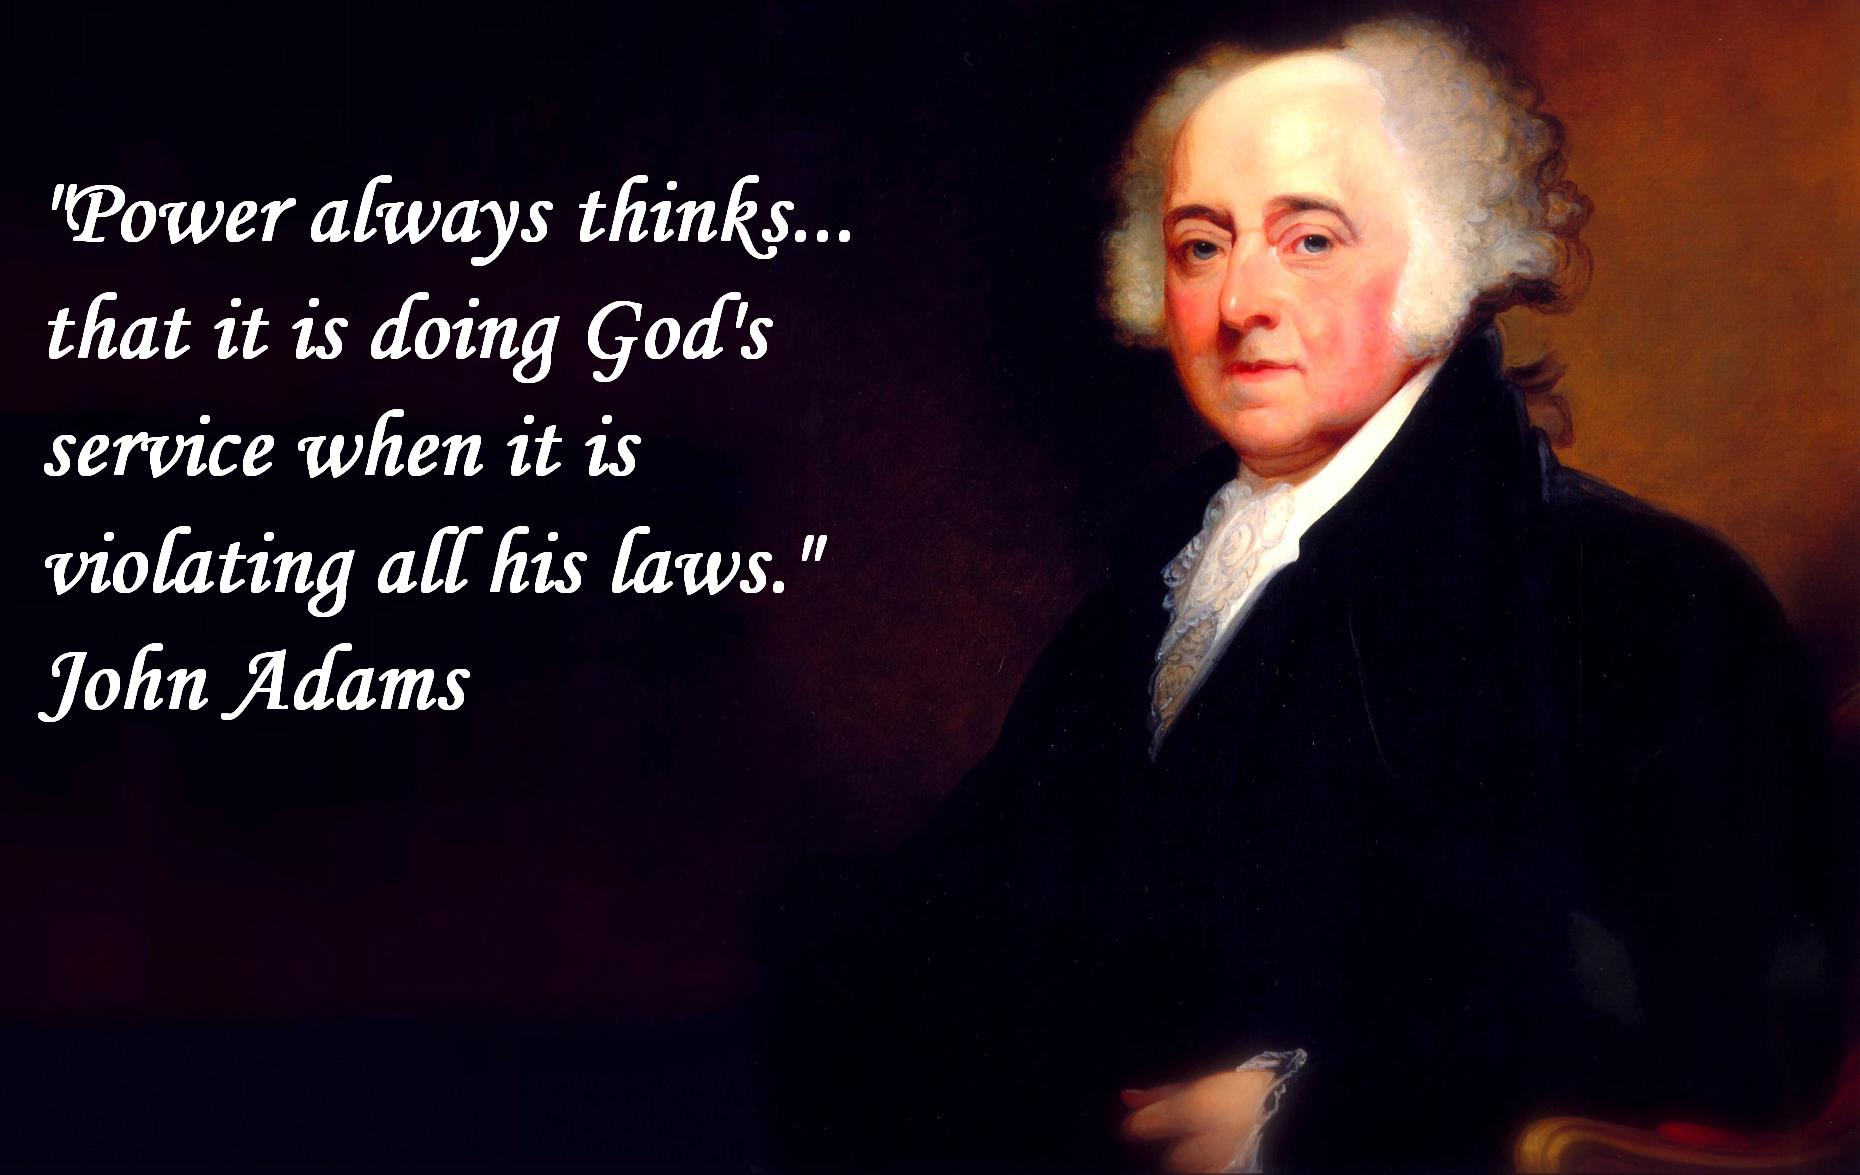 Power always thinks... that it is doing God's service when it is violating all of His laws.